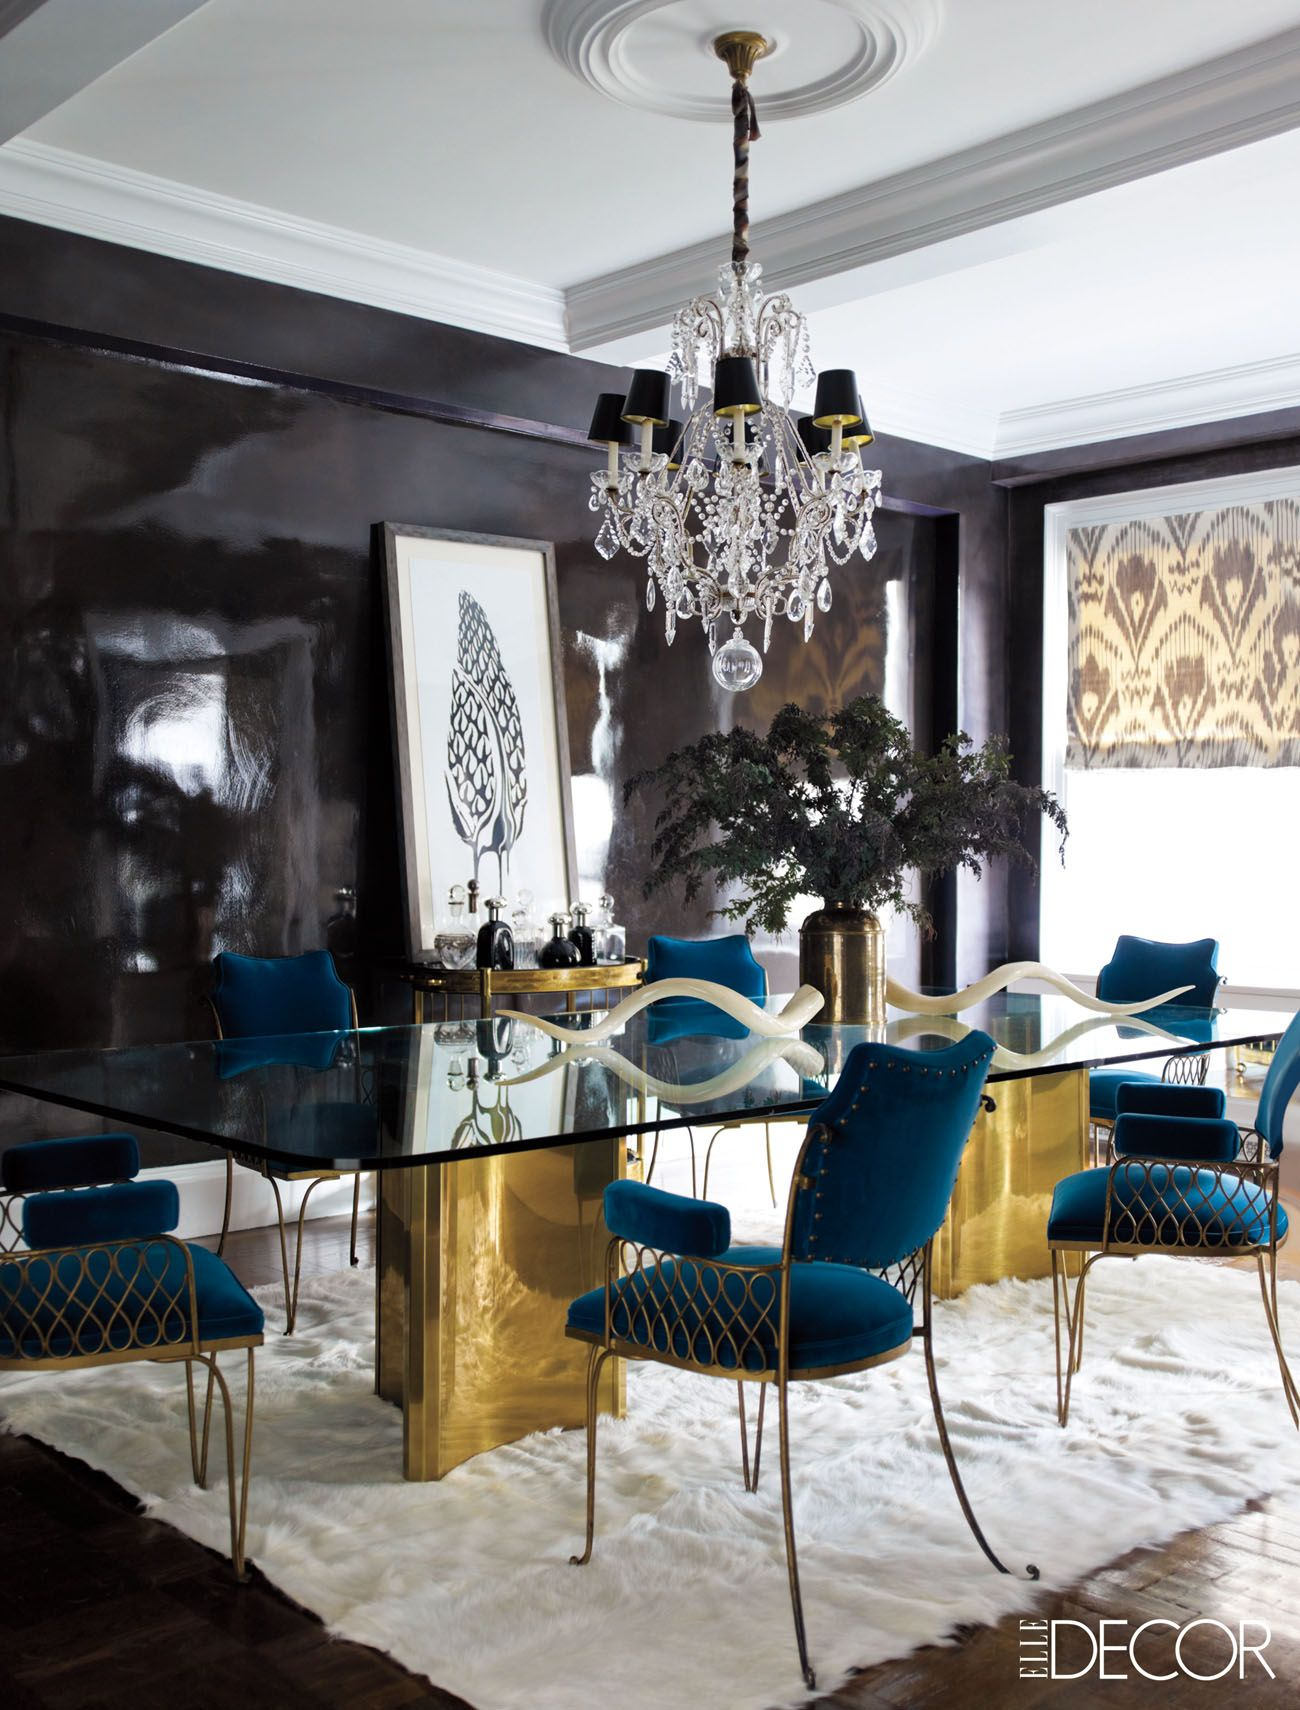 14 Gilded Rooms That Will Inspire You To Go For The Gold